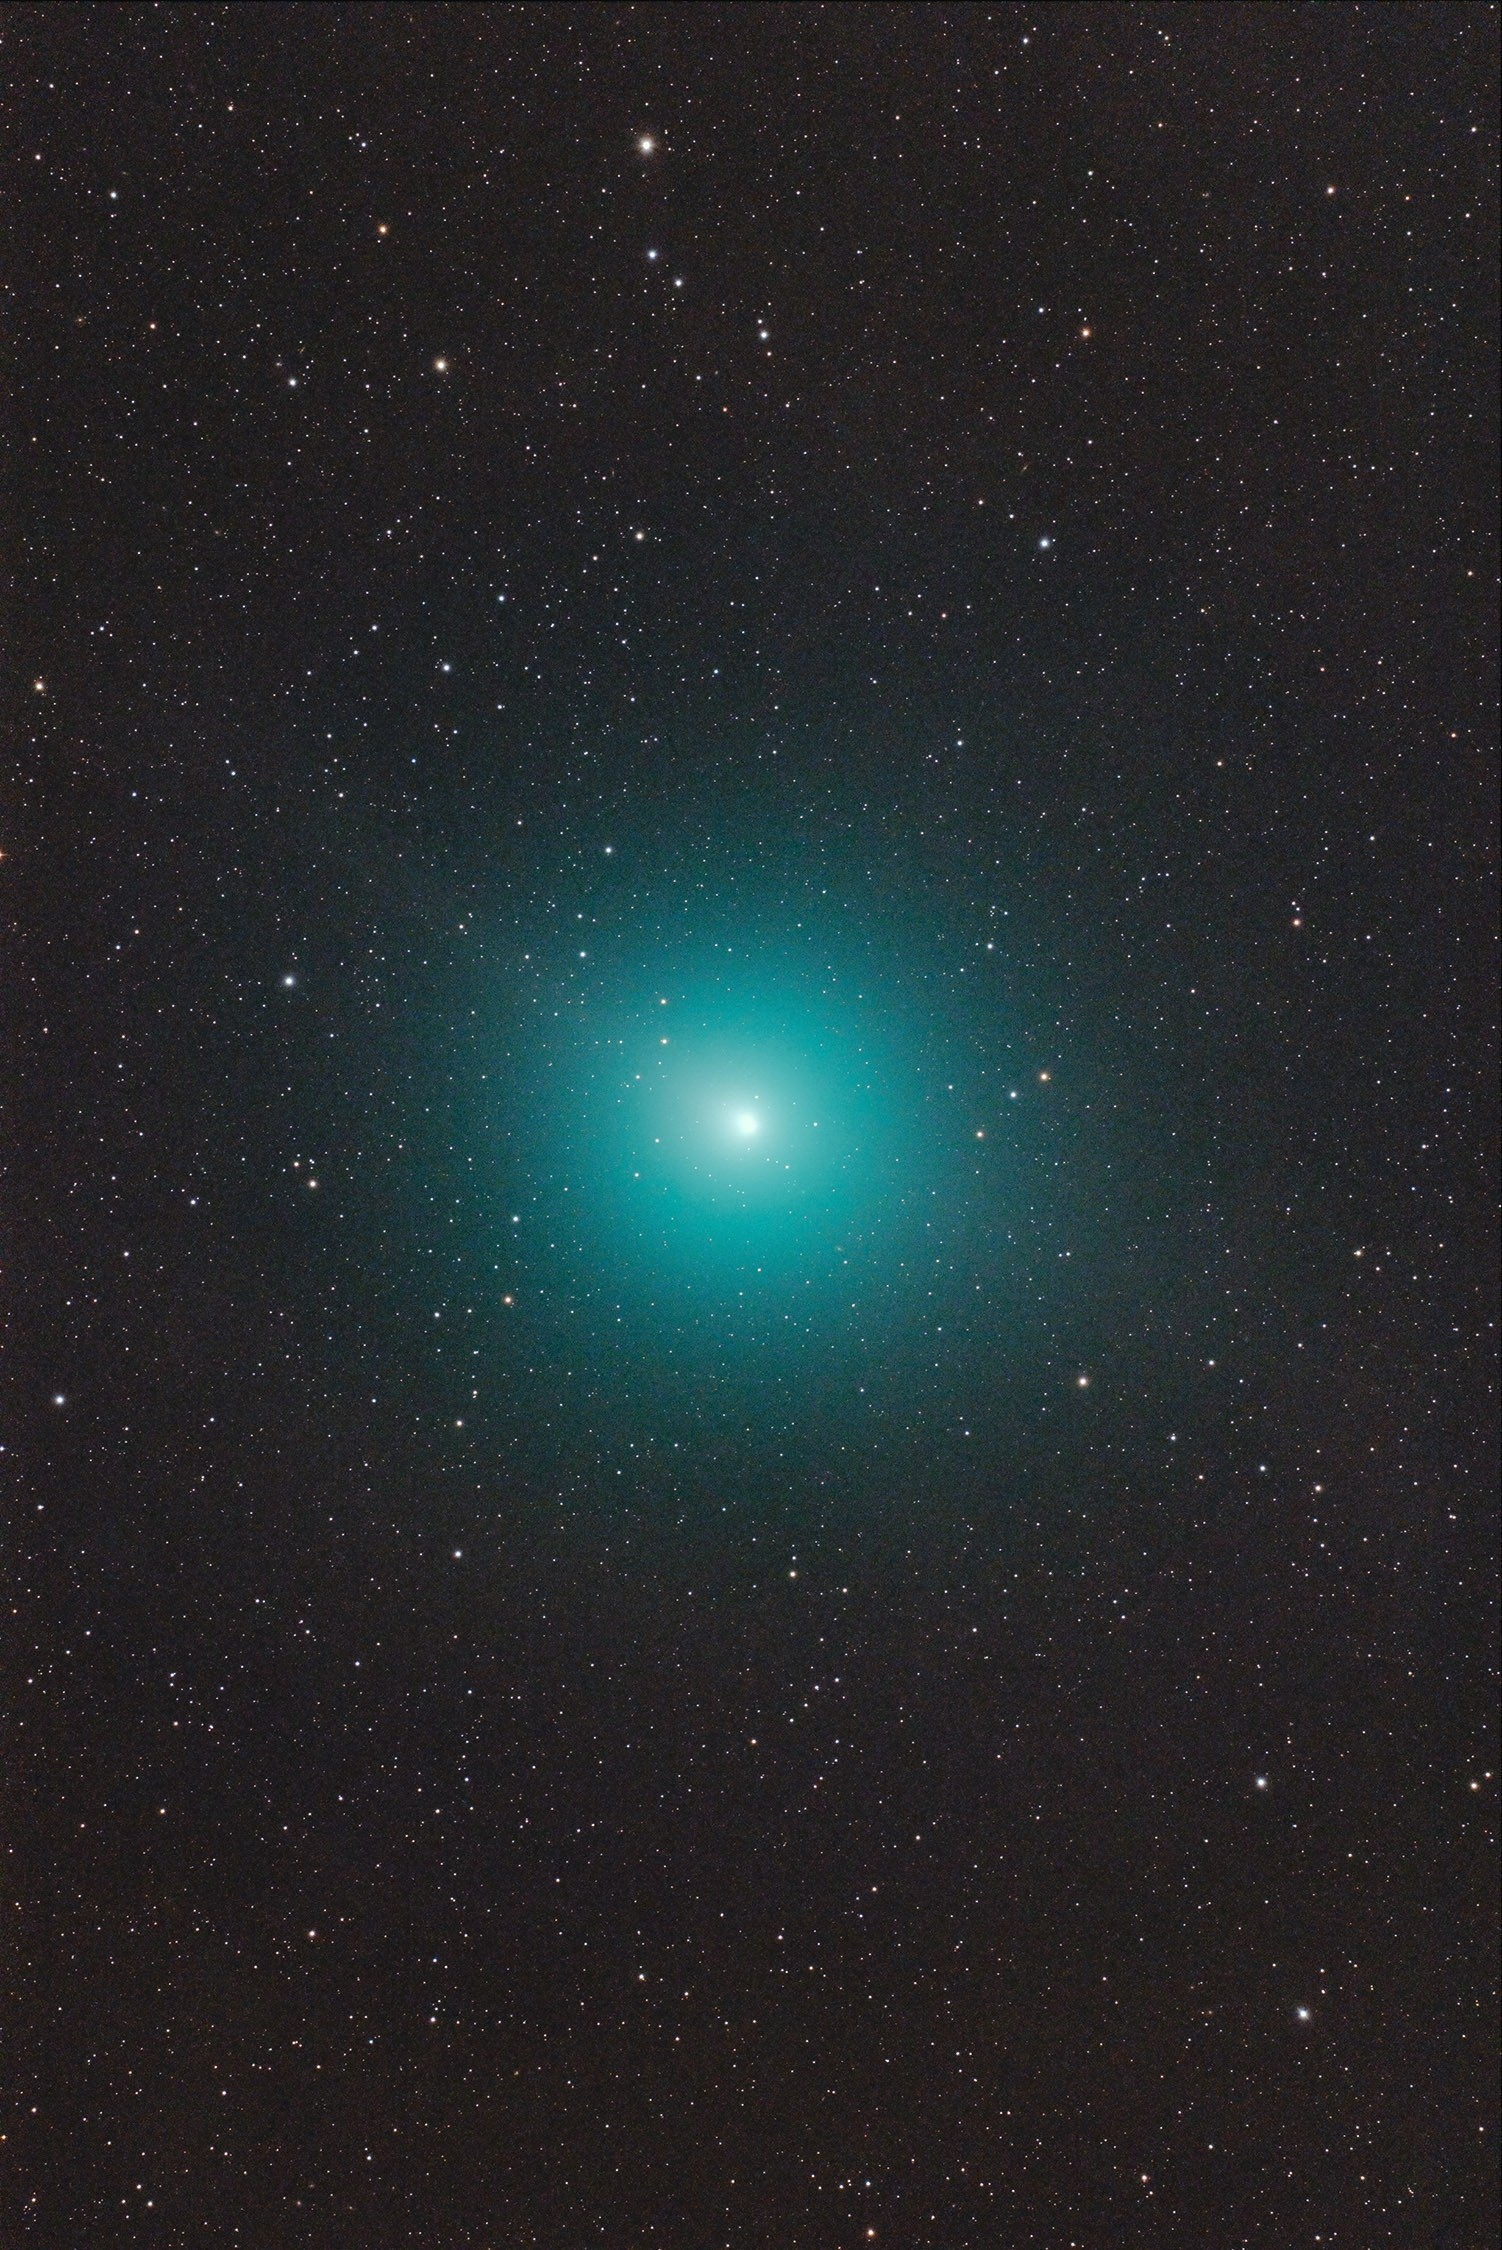 Application image: Komet 46P/Wirtanen with Baader Apo95 + D810A by C. Kaltseis